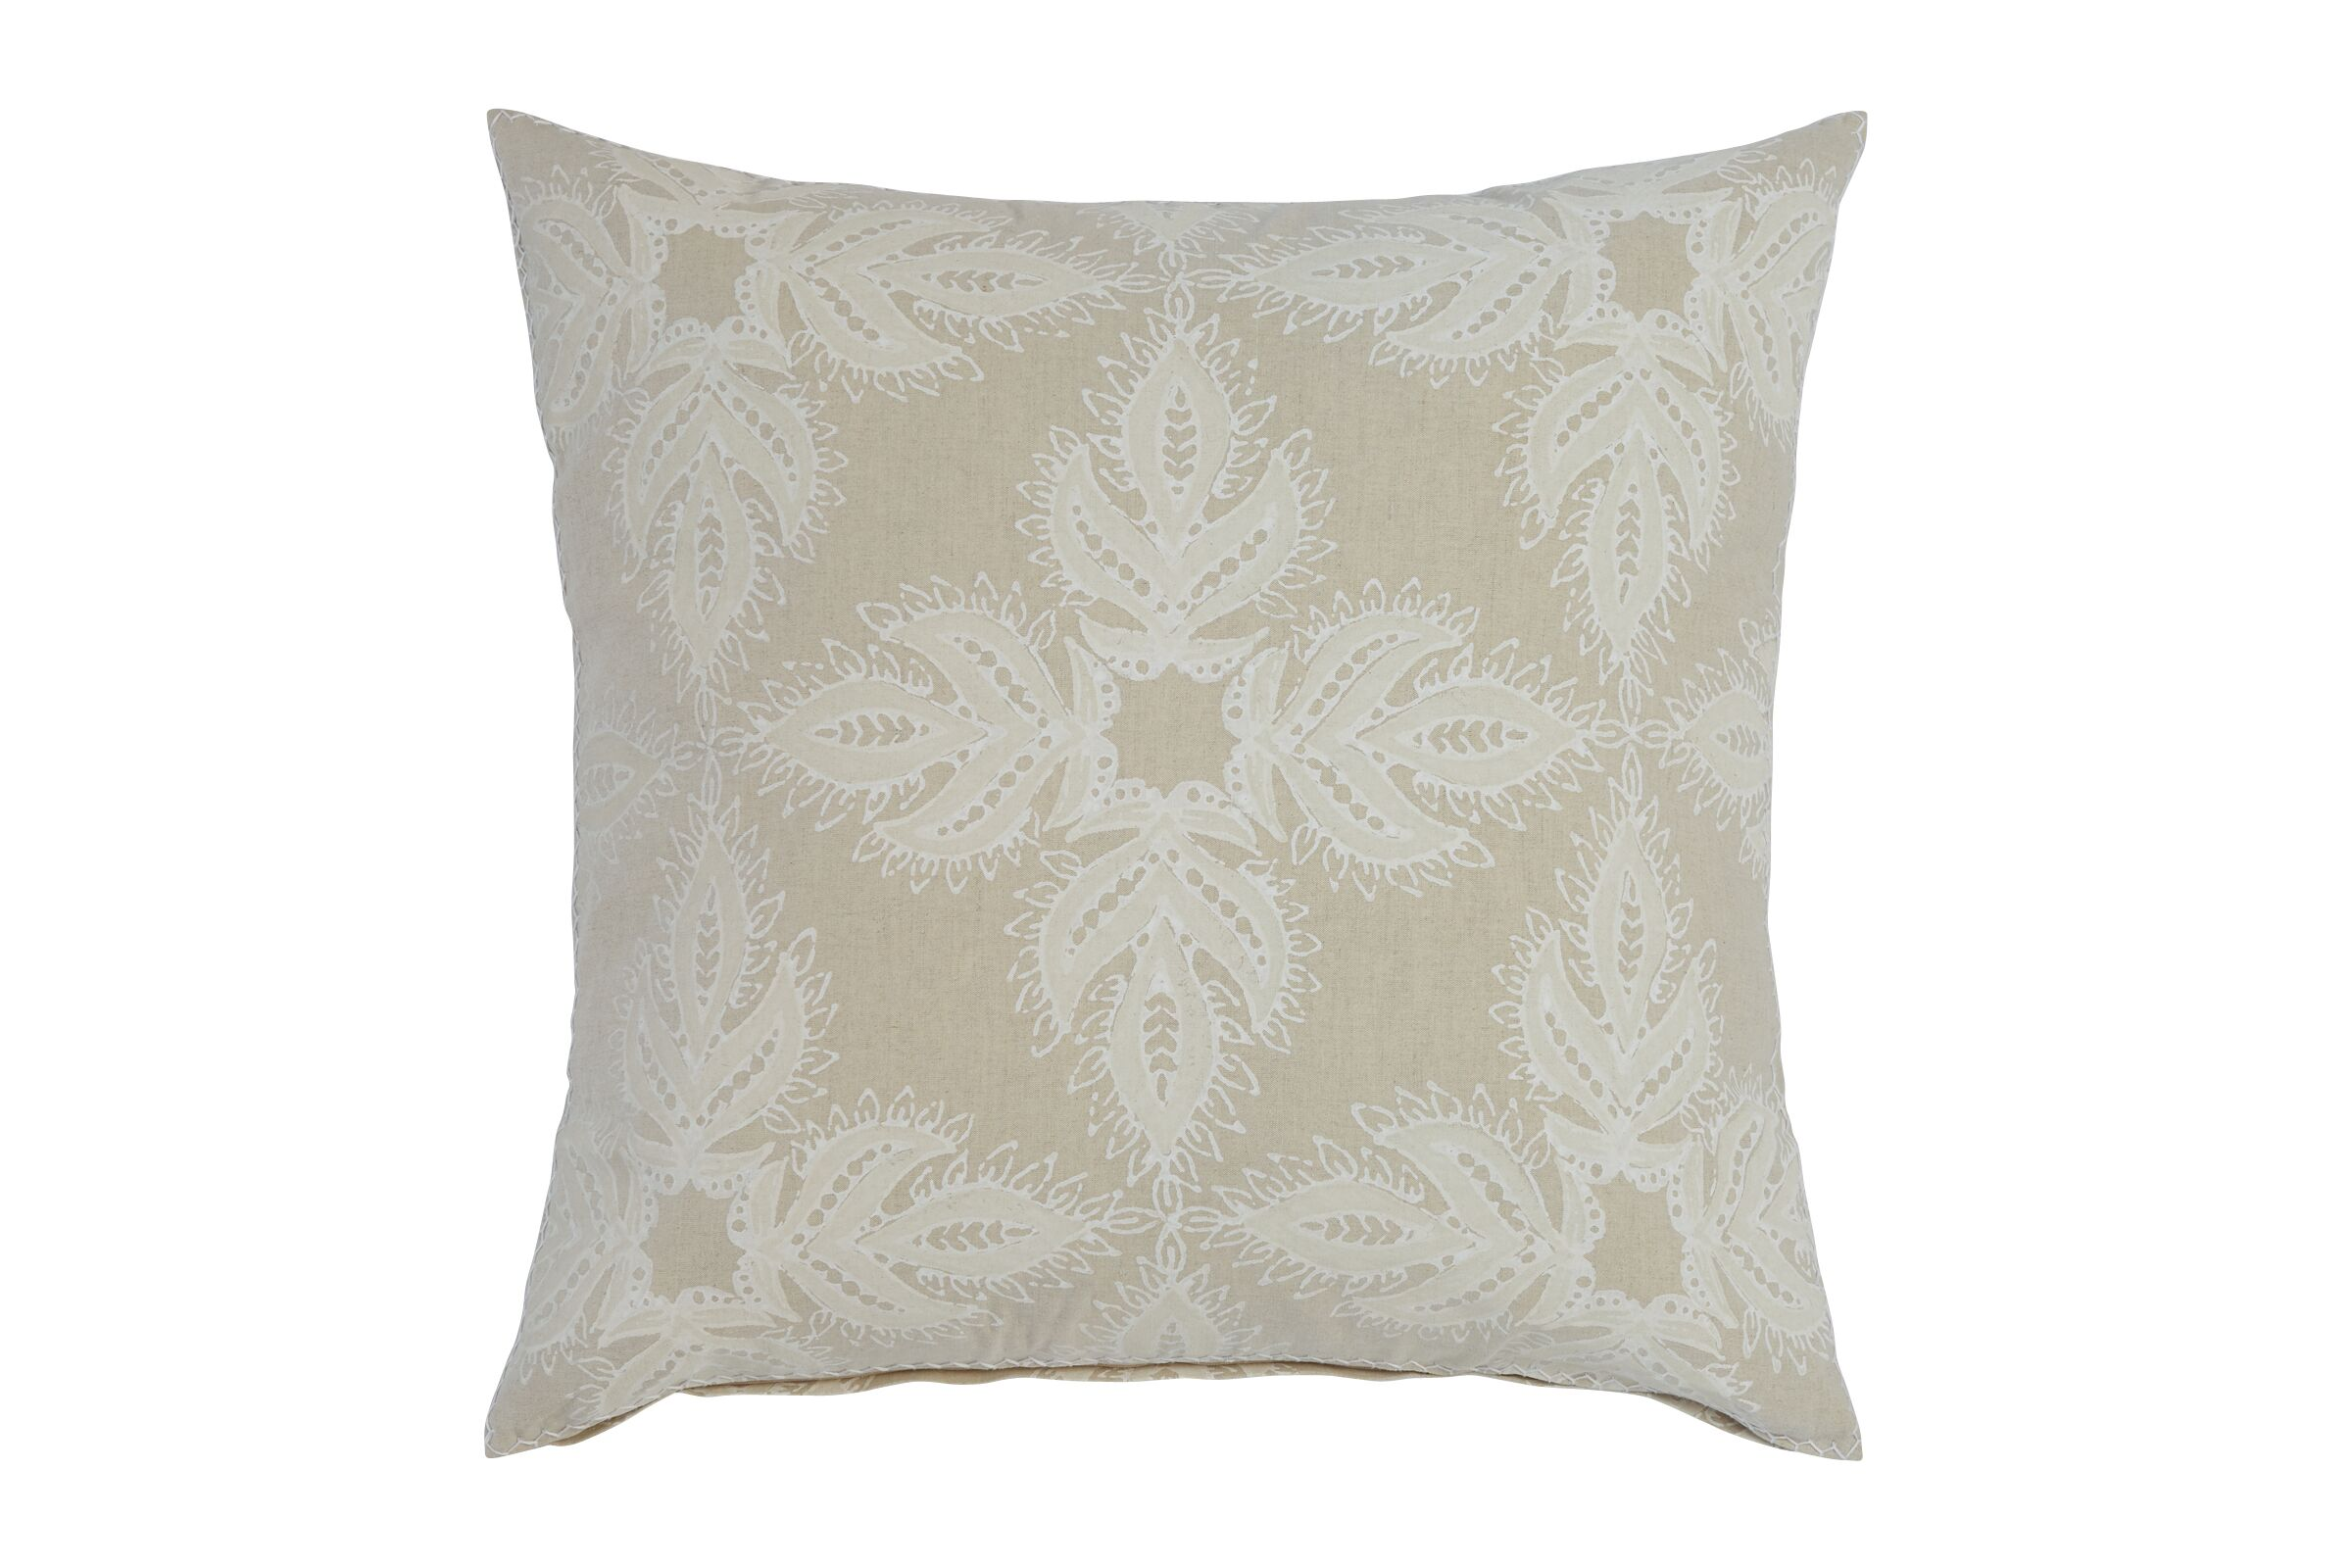 tan pillow with white textured design